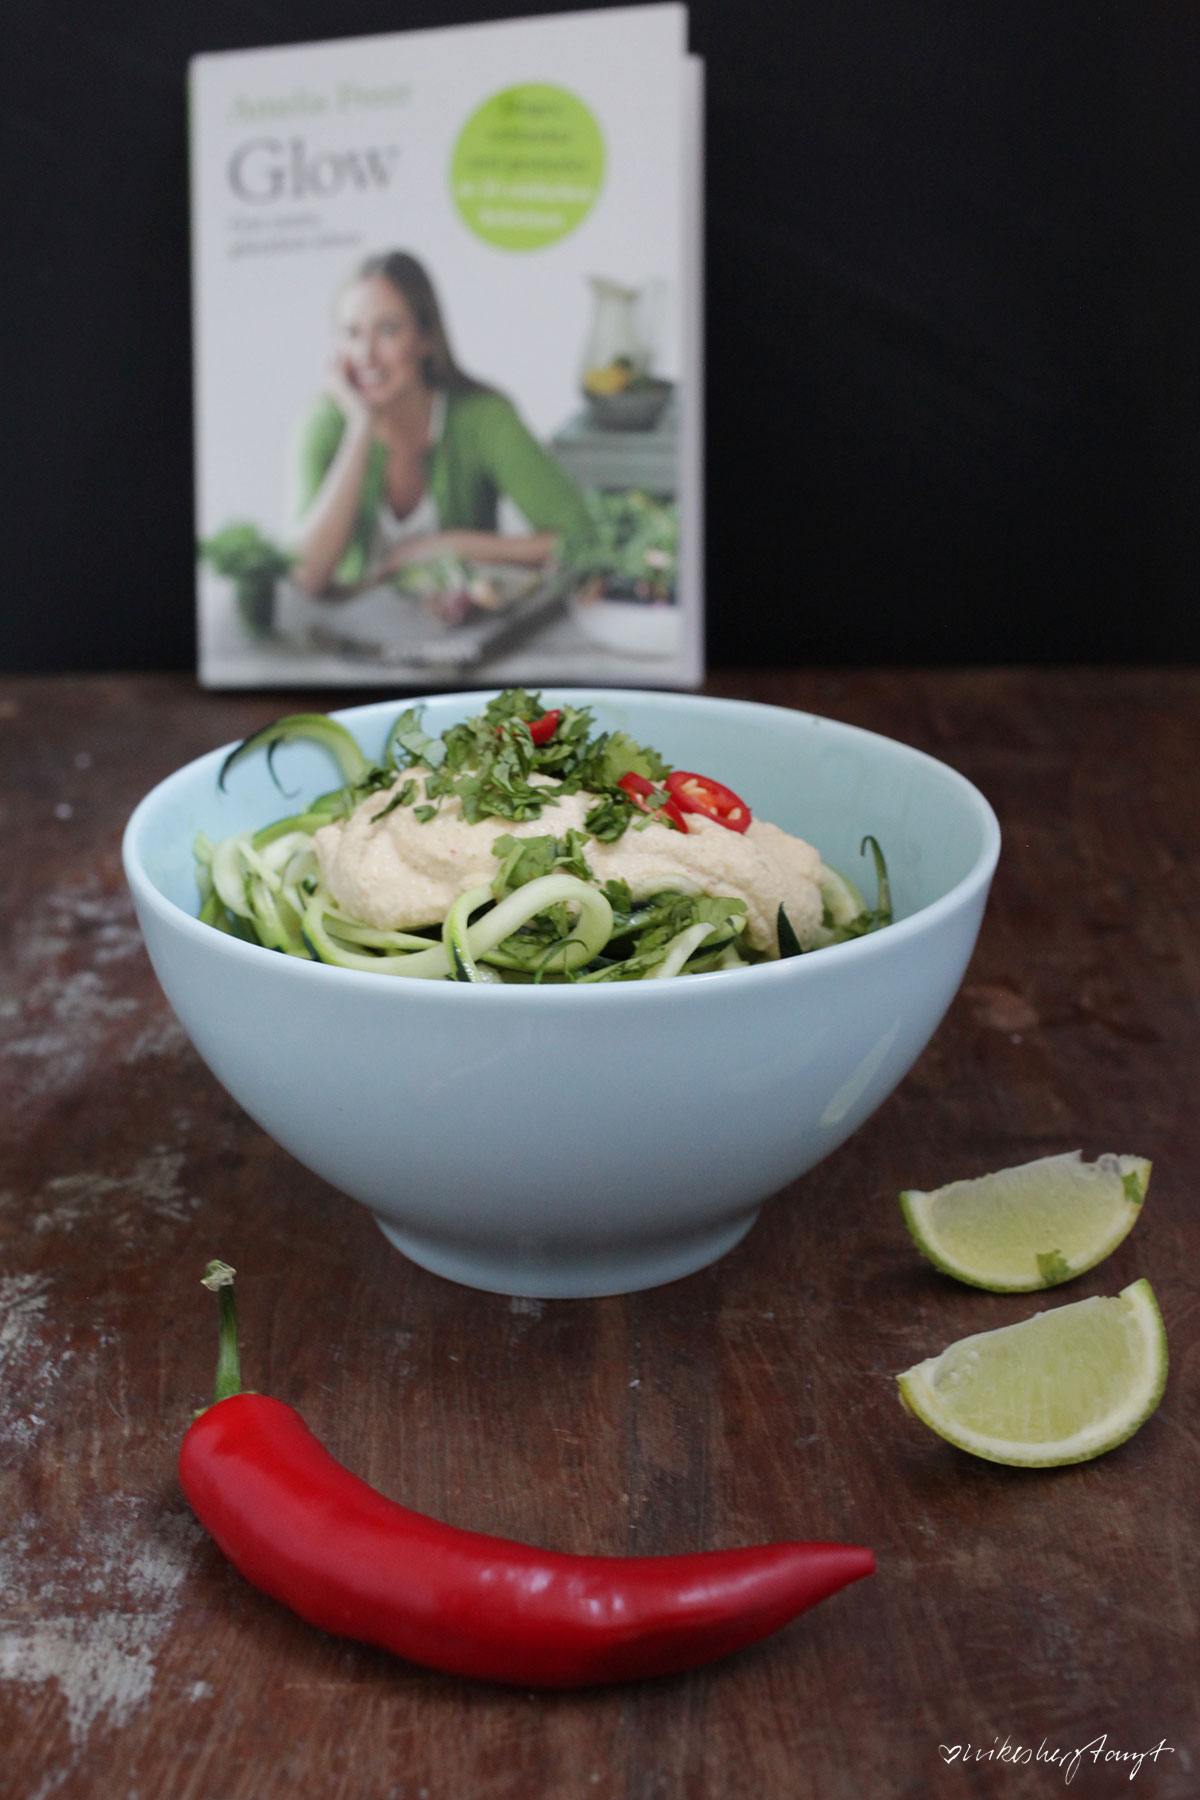 cremige thaisauce, glow, zucchini spaghetti, amelia freer, gut essen, clean eating, vegan, vegan food, food blog, nikesherztanzt